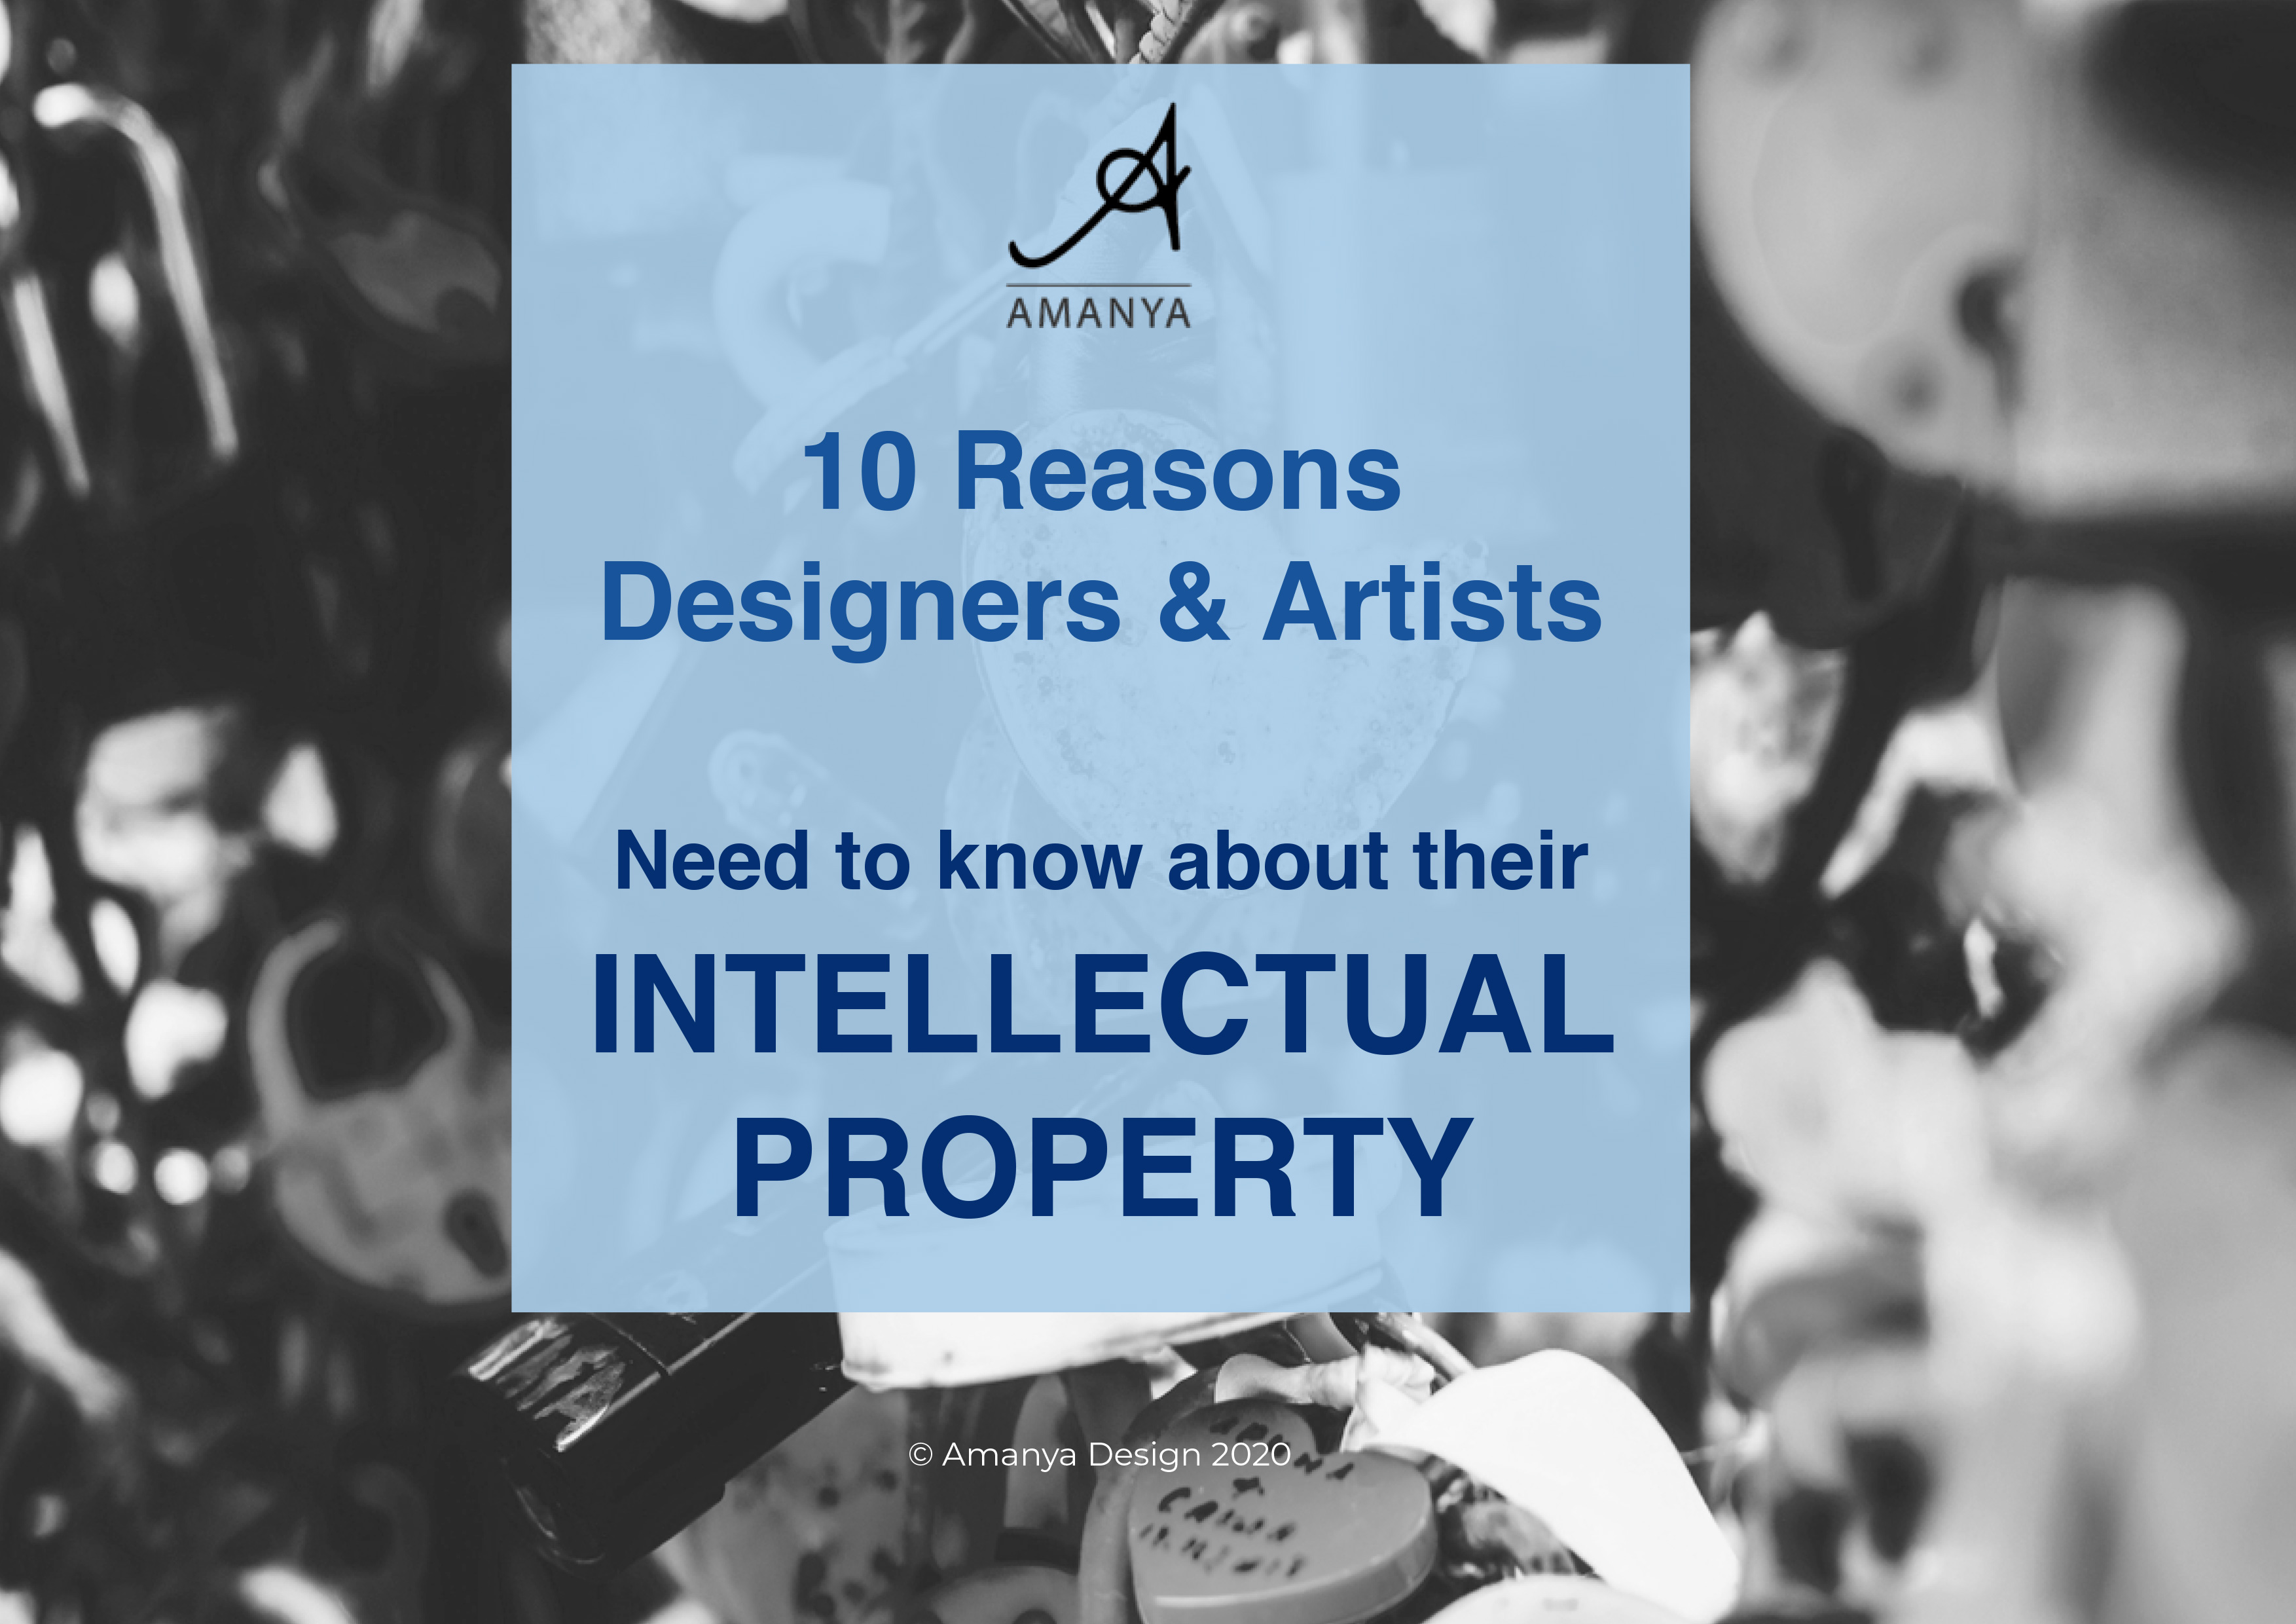 10-Reasons-Intellectual-Property-Designers-and-Artists